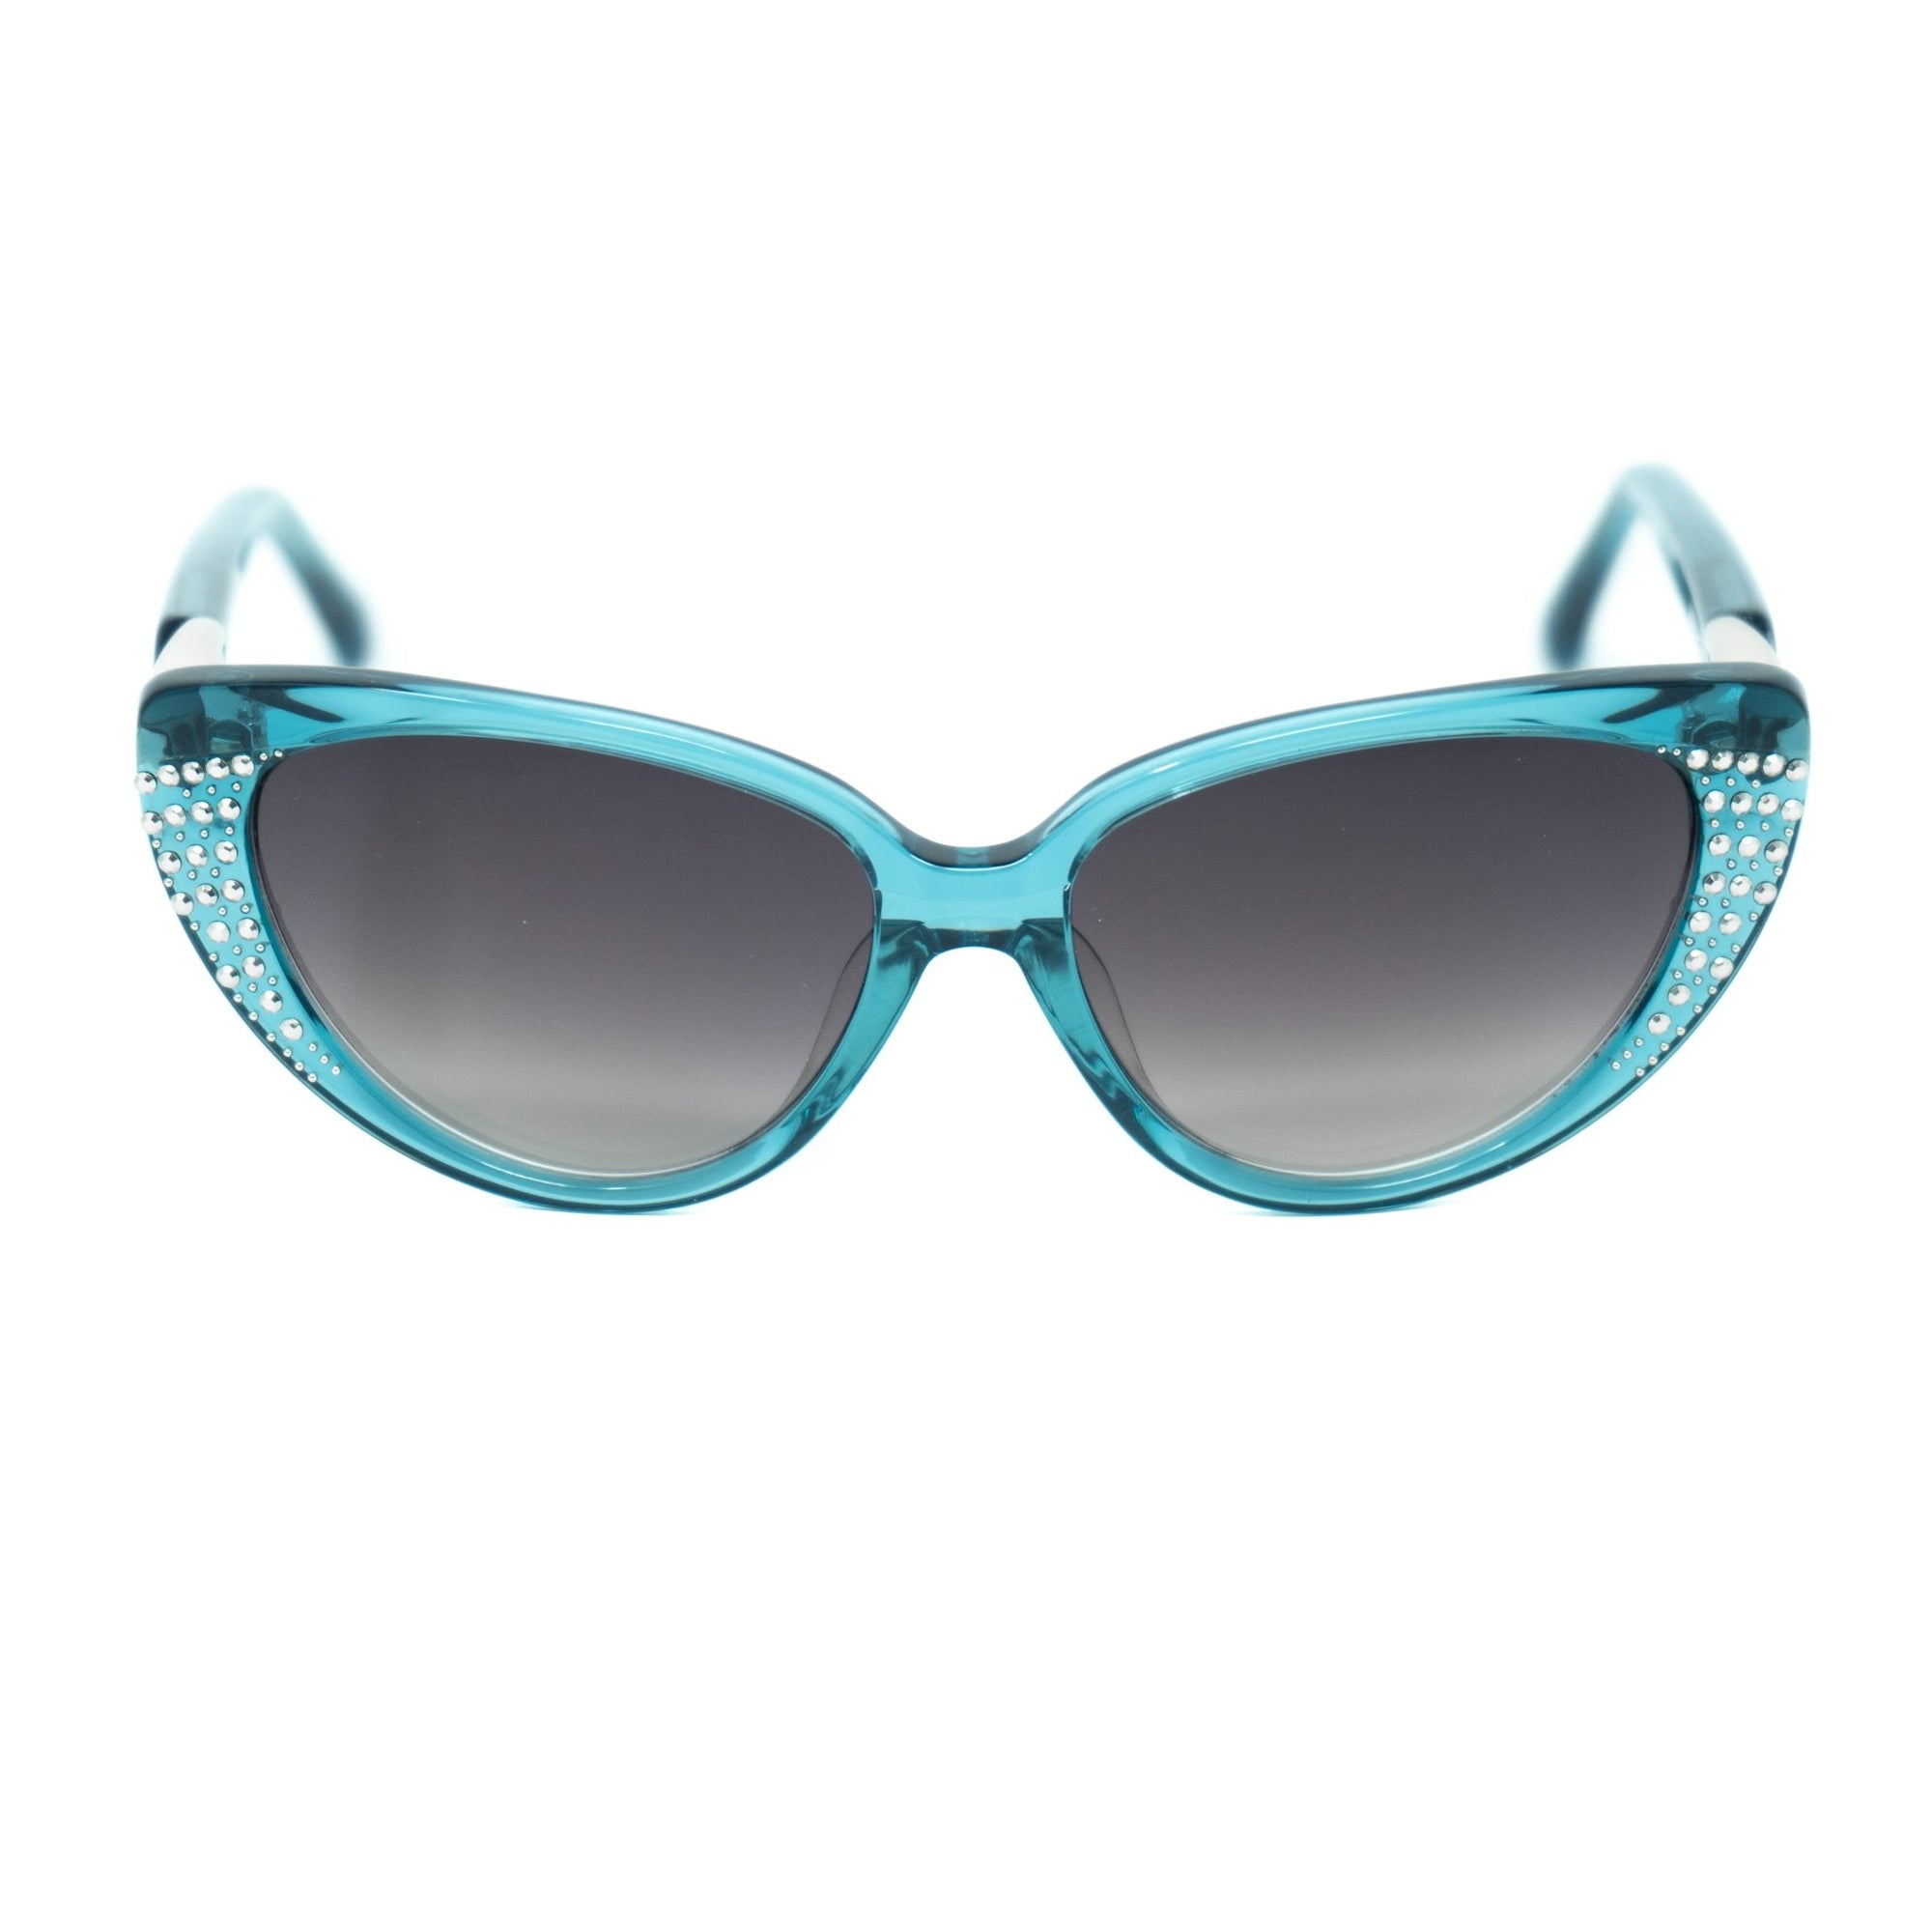 Agent Provocateur Women Sunglasses Cat Eye Blue and Grey Lenses Category 3 - AP19C6SUN - Watches & Crystals